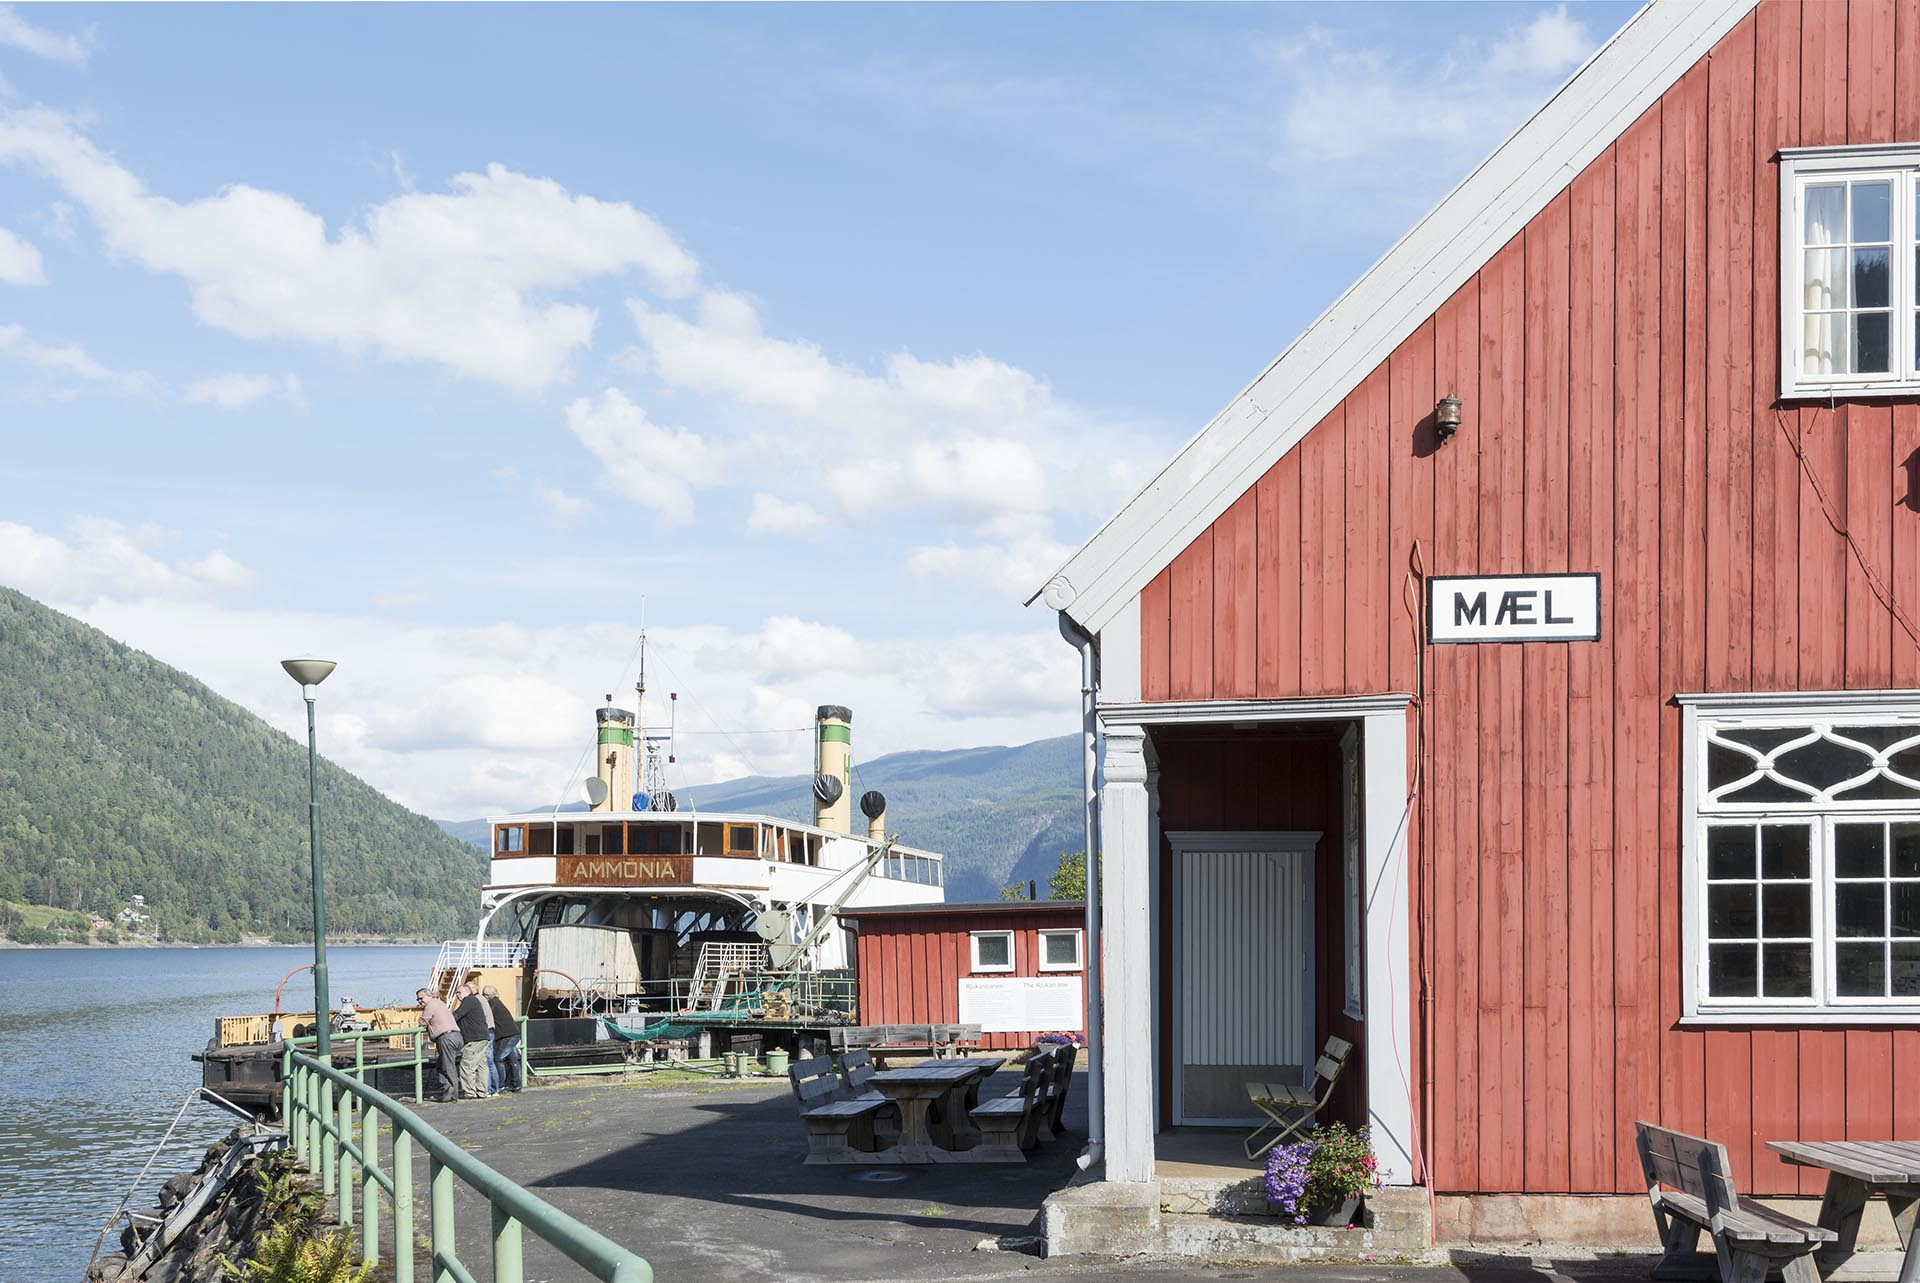 Mæl Station on the Rjukan Line with Ammonia in the background. Photo: Per Berntsen